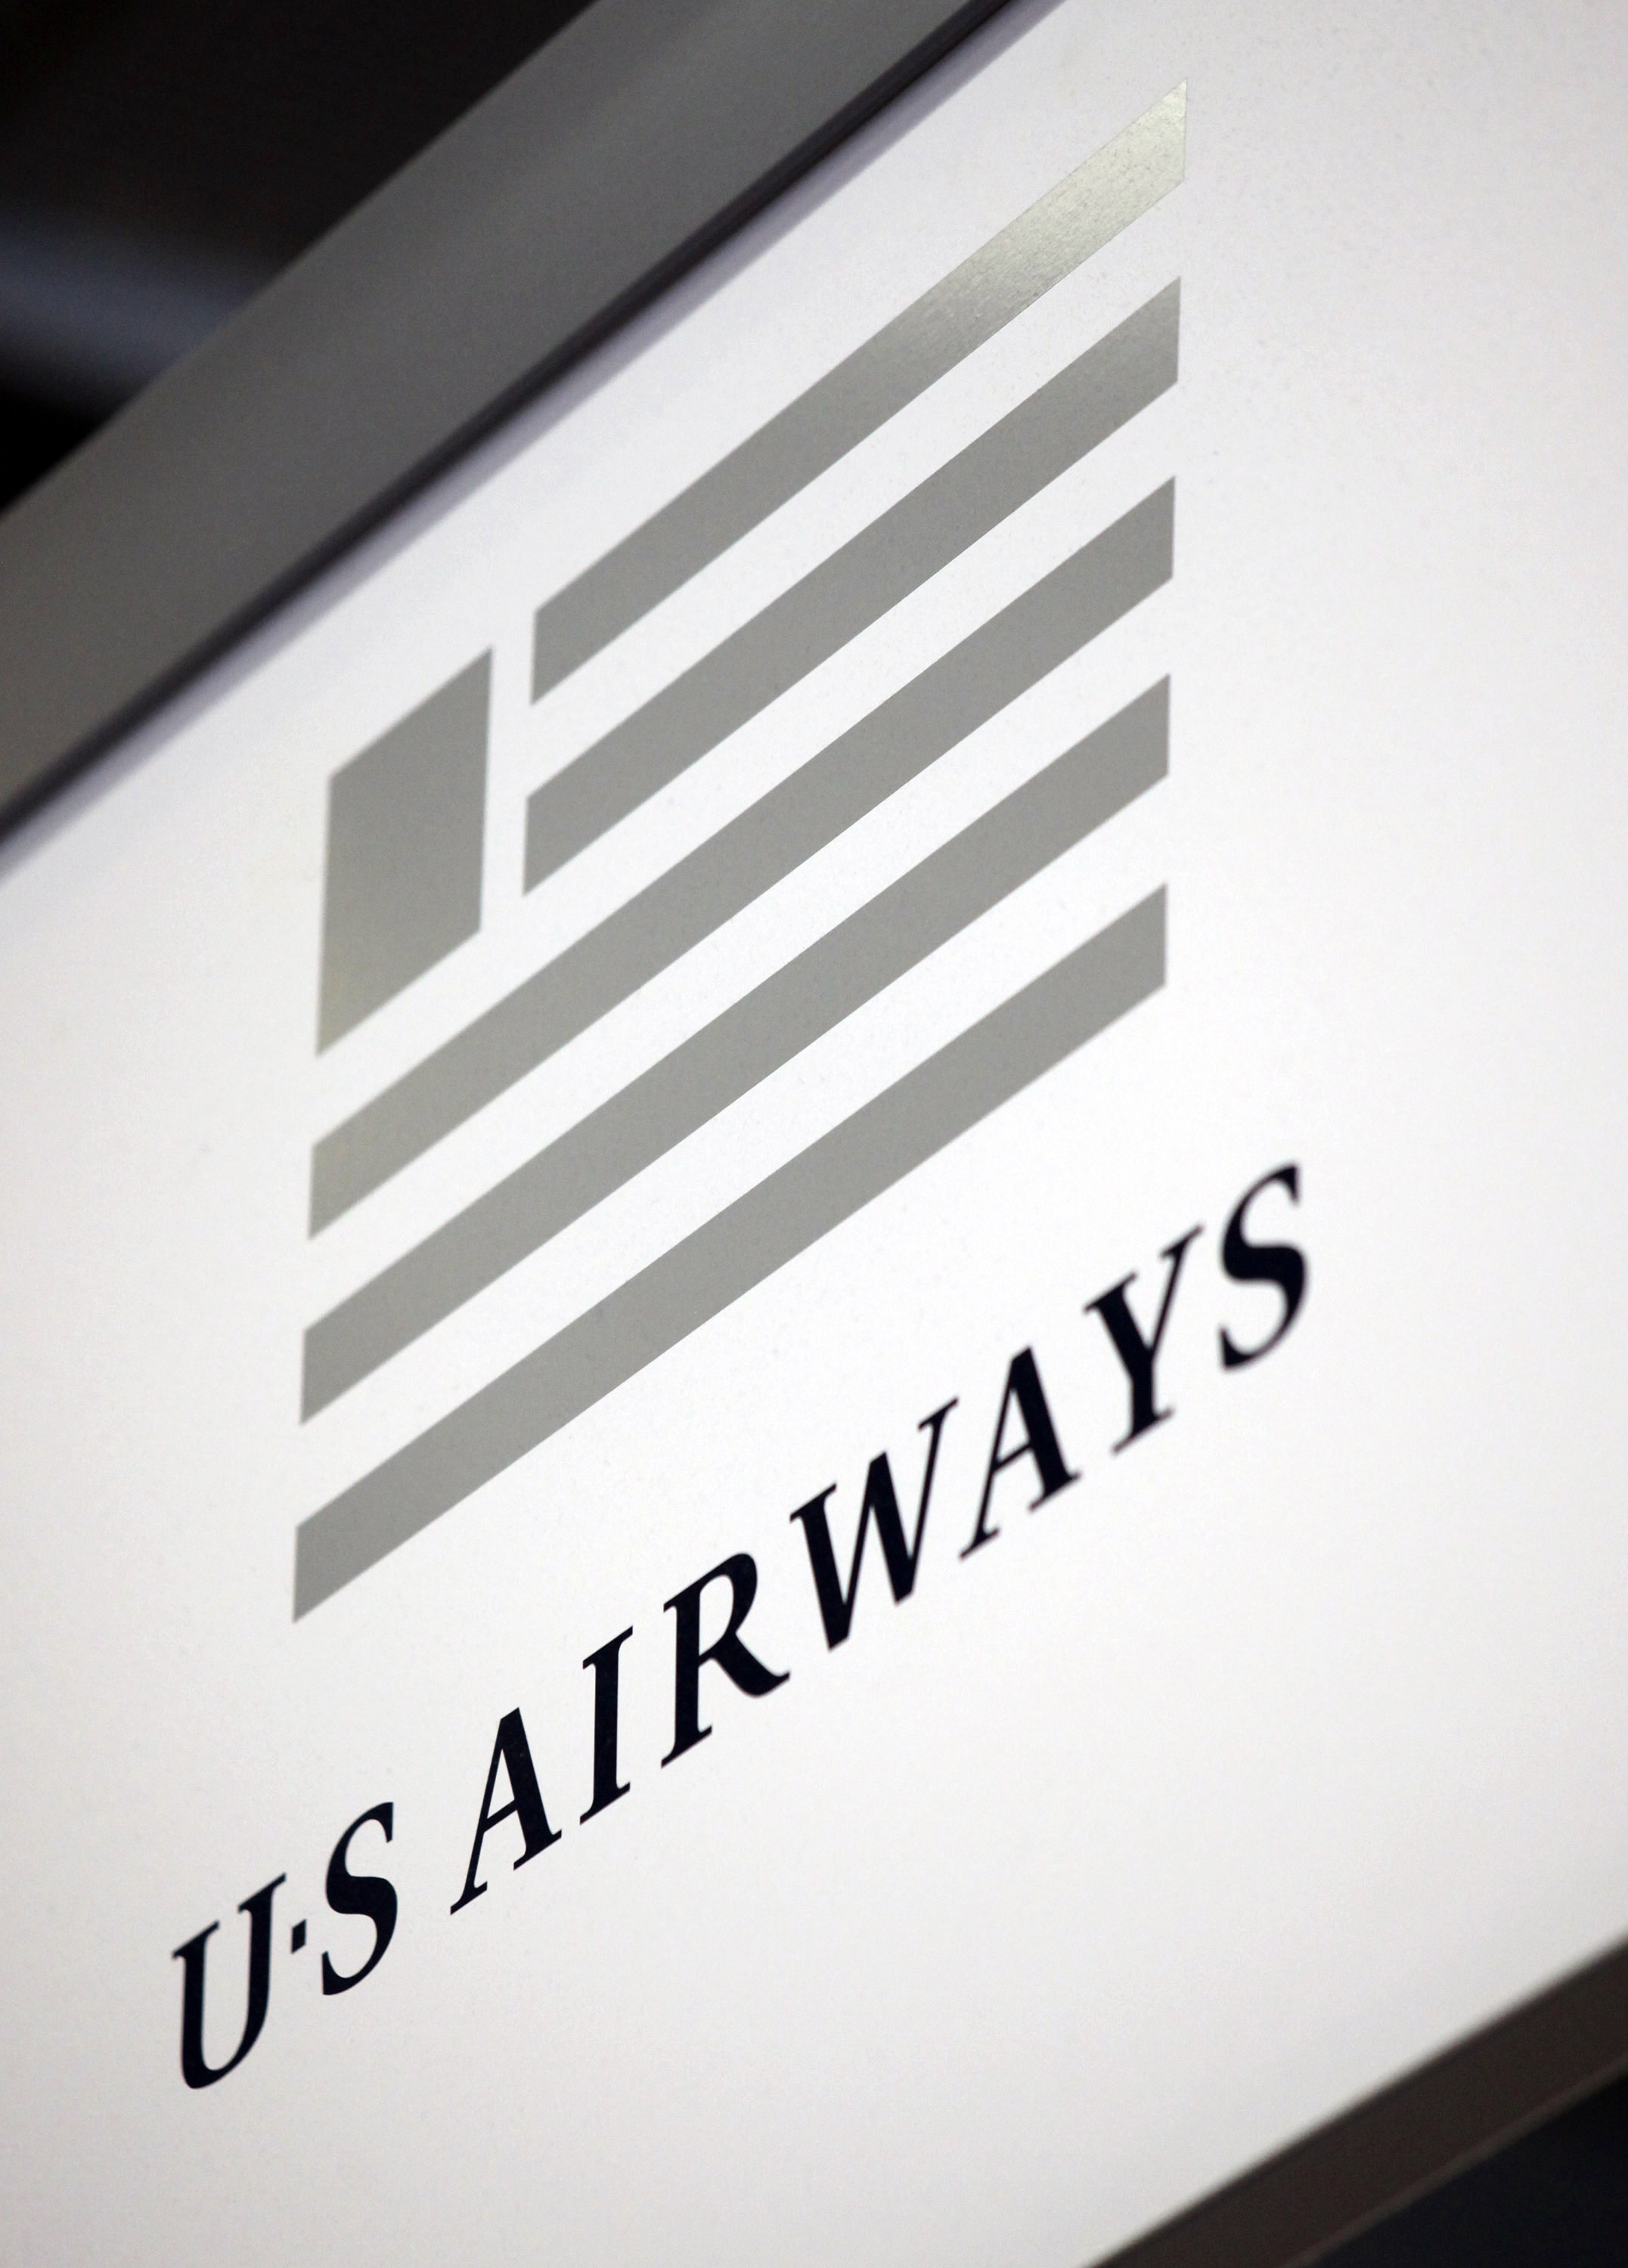 The US Airways logo hangs near a ticket counter at O'Hare International Airport in Chicago, on April 8, 2010.